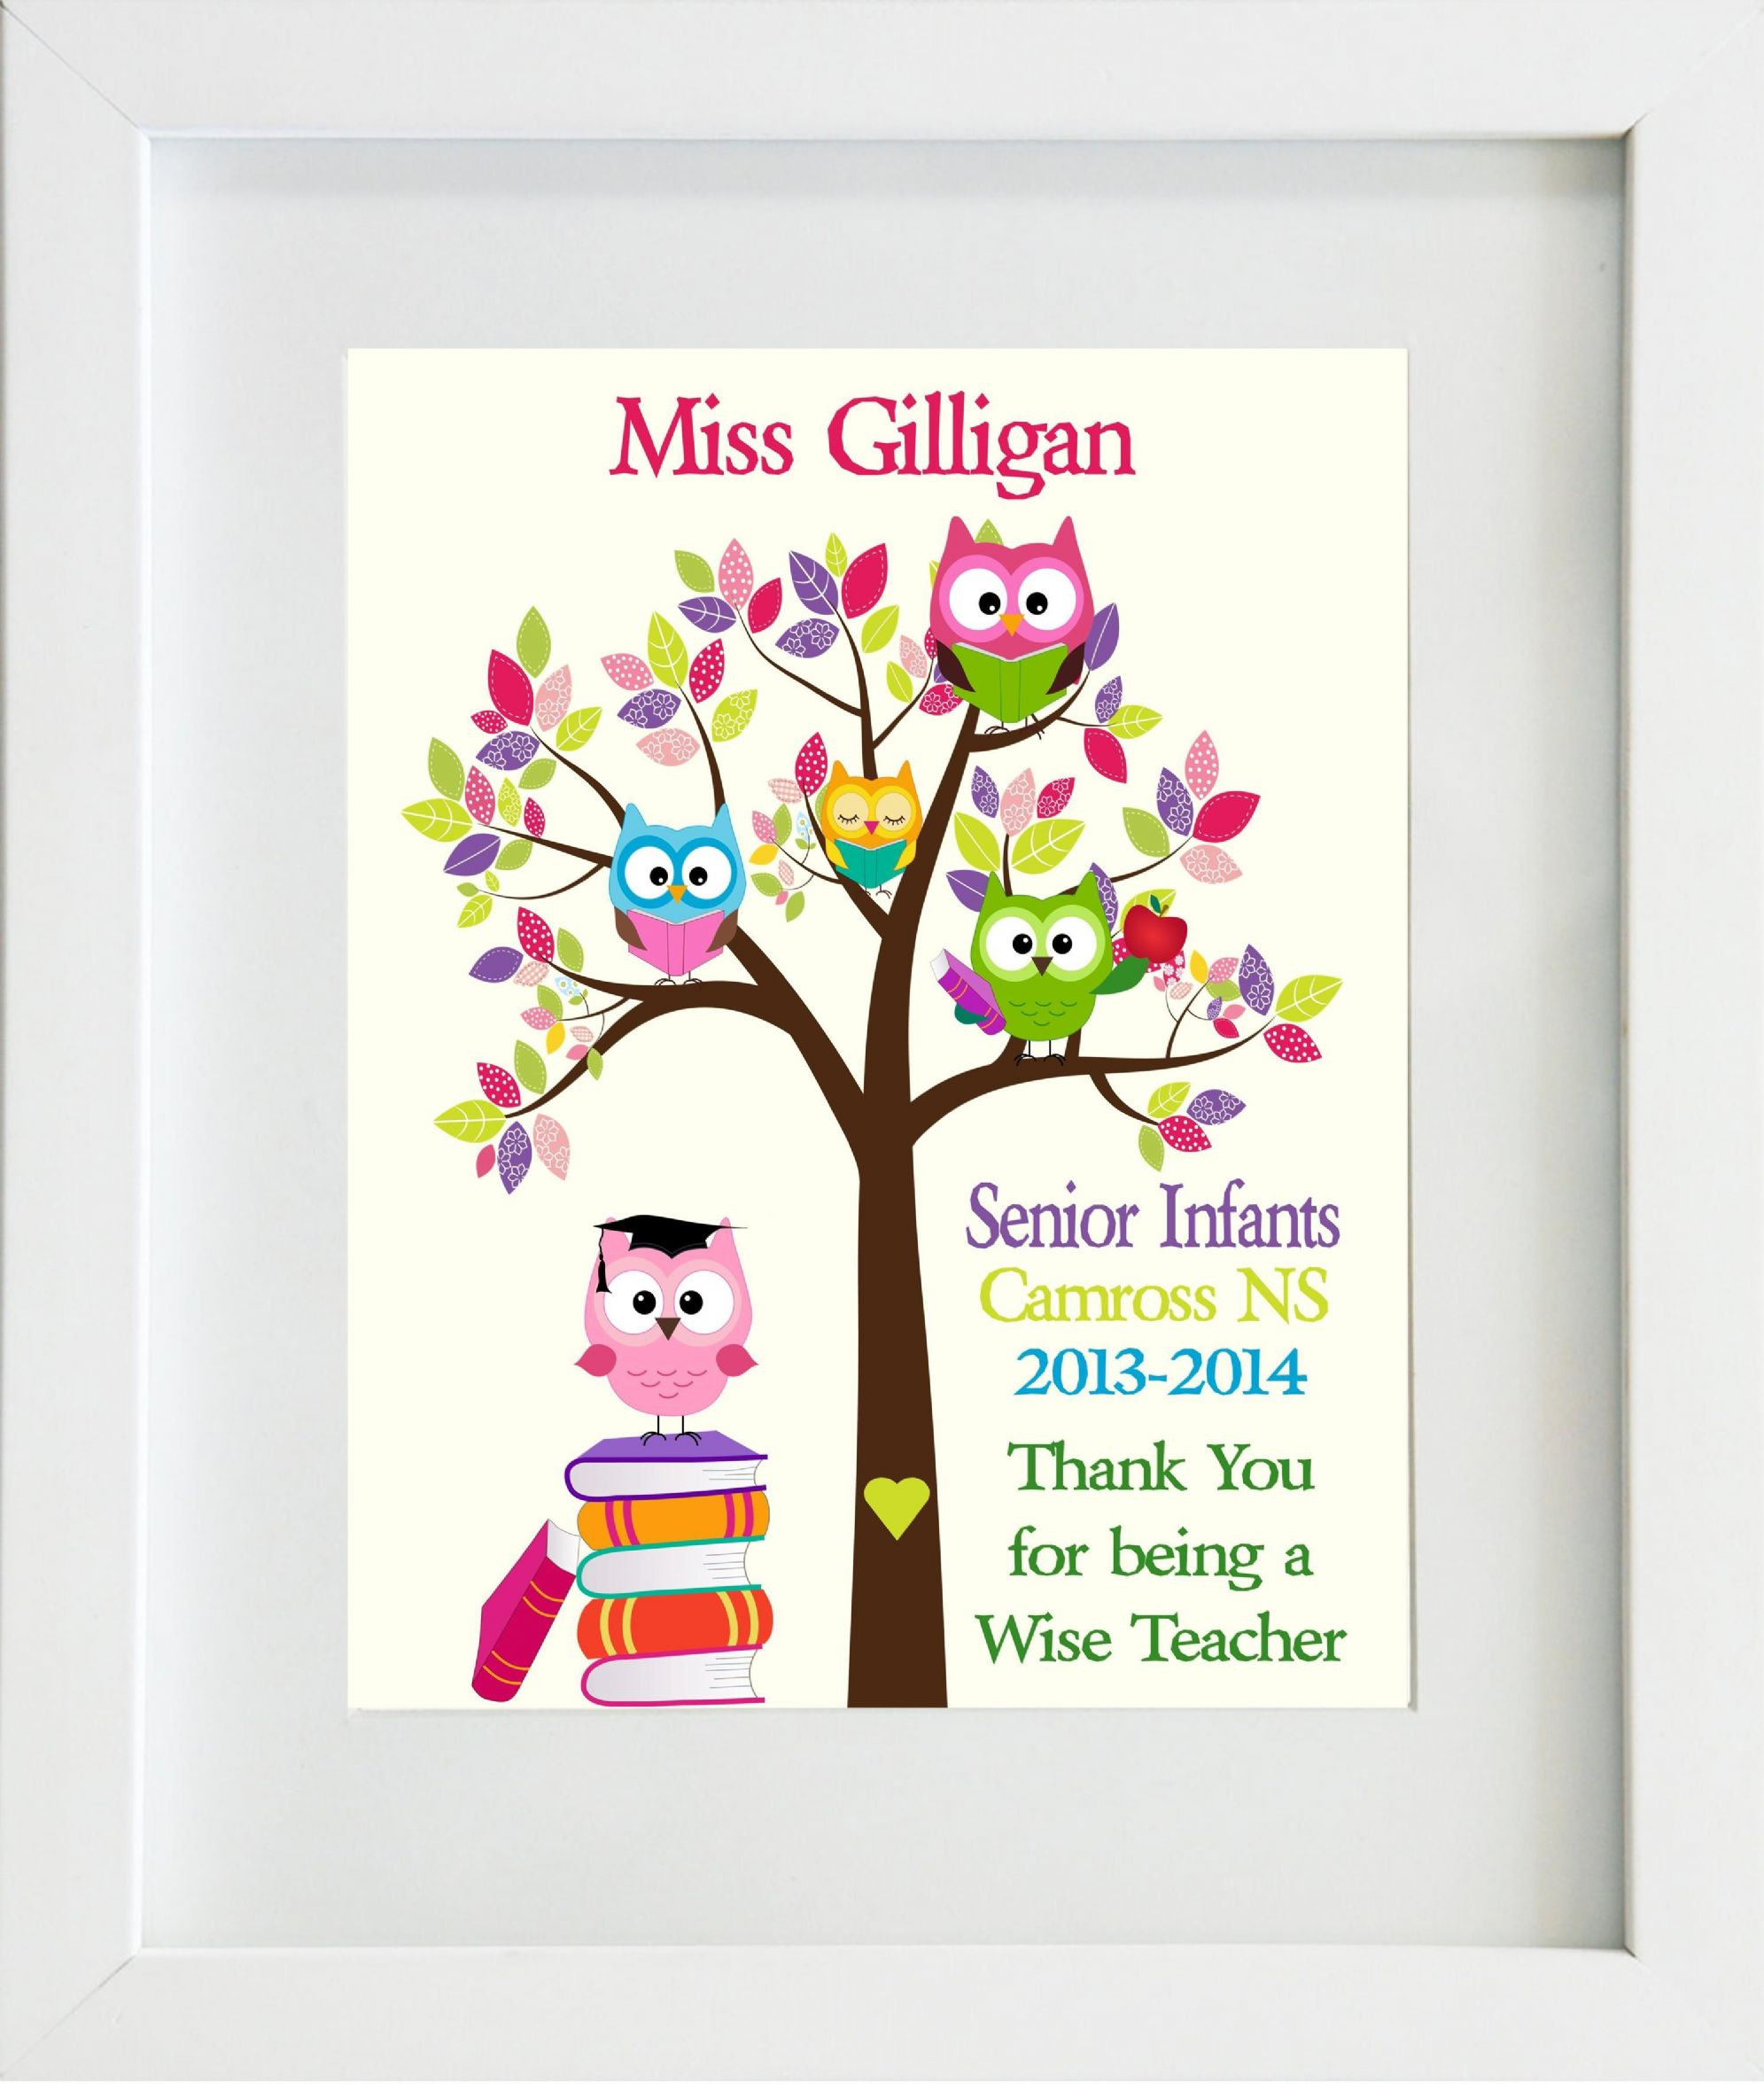 thank you teacher print design 1 - Teacher Pictures To Print